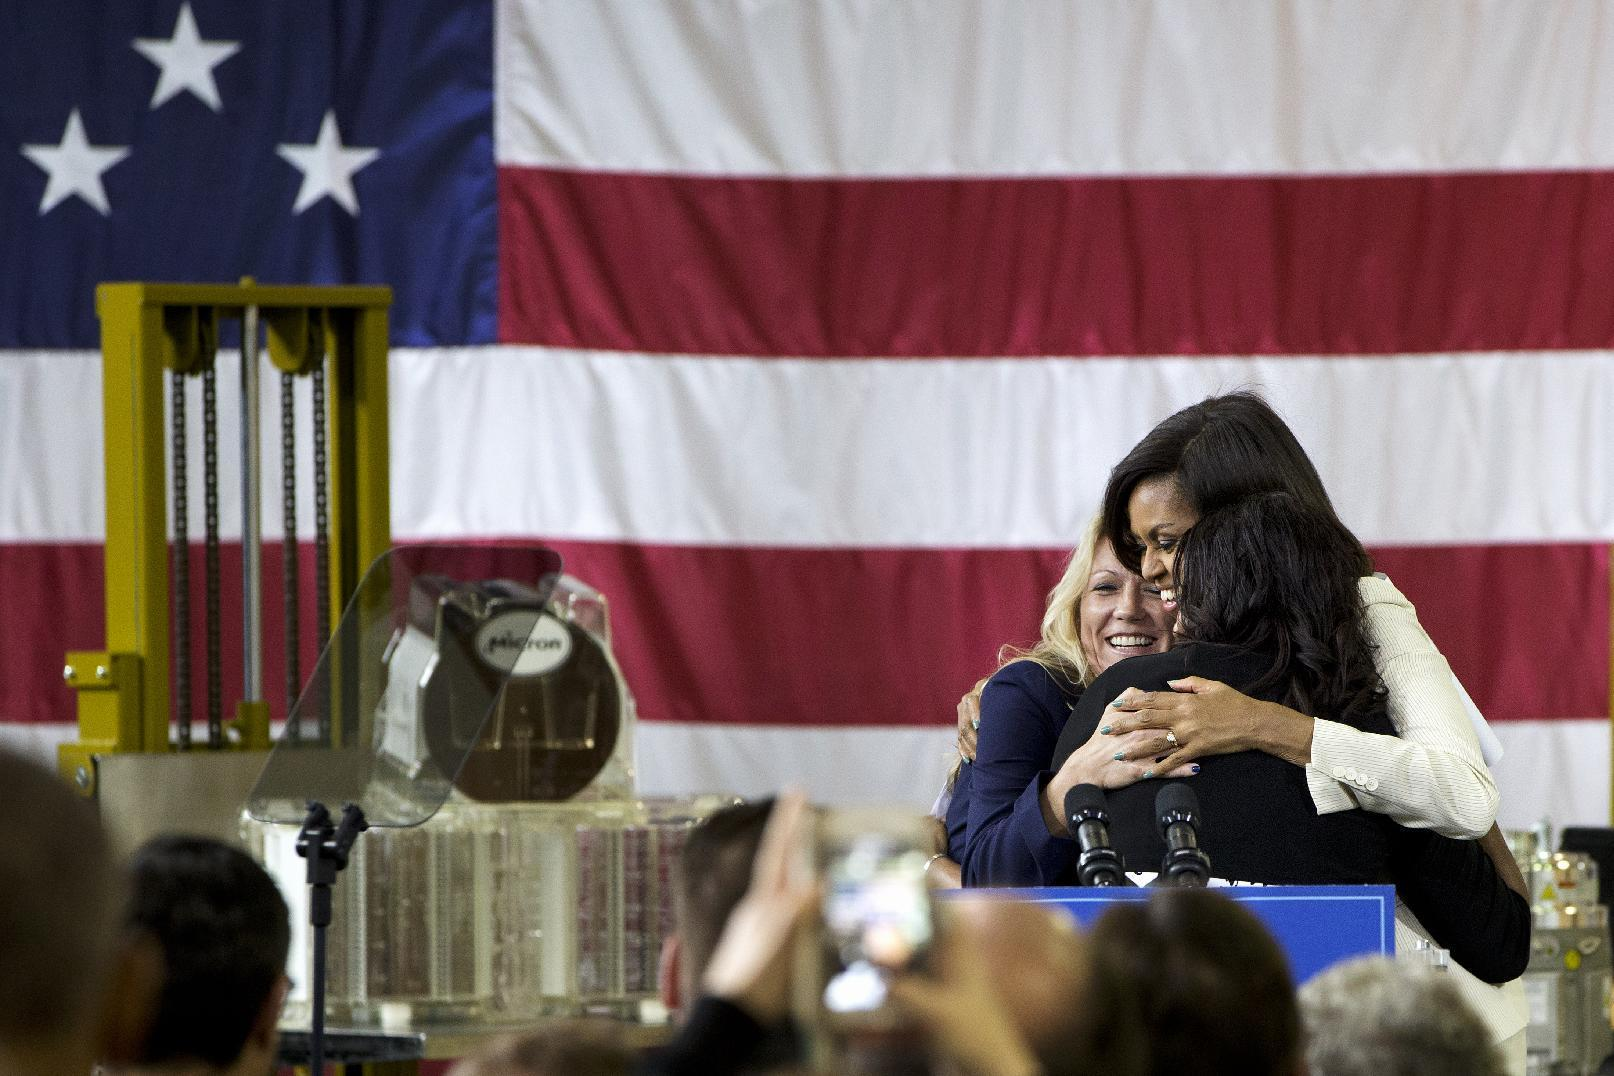 First lady: Tech industry to train, hire 90K military vets